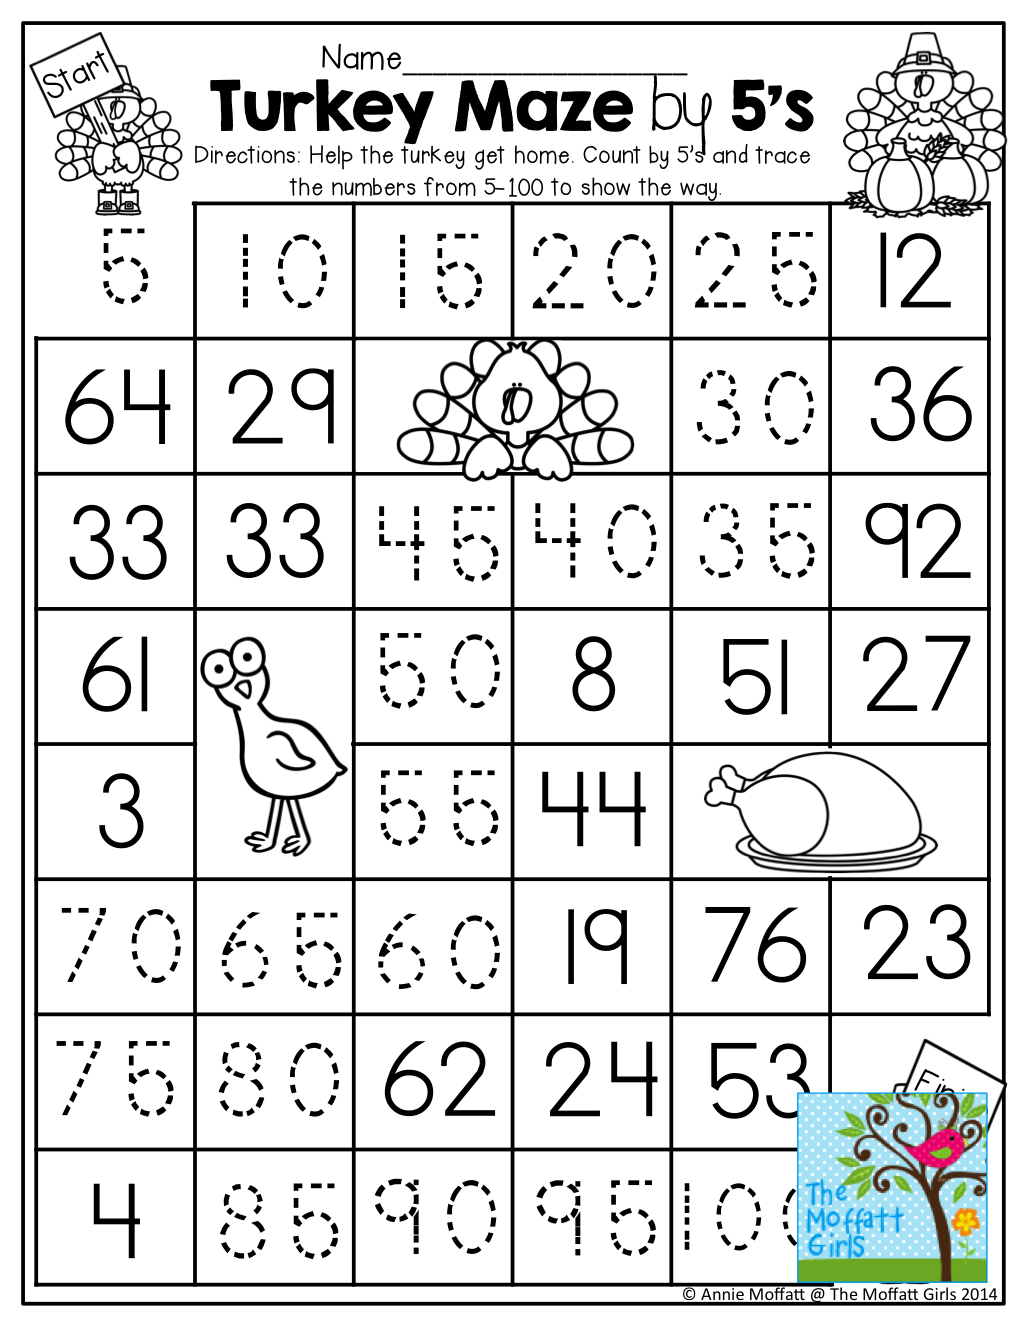 Count by 5s Worksheet by TRACING the path from the turkey to the – Count by 5s Worksheet